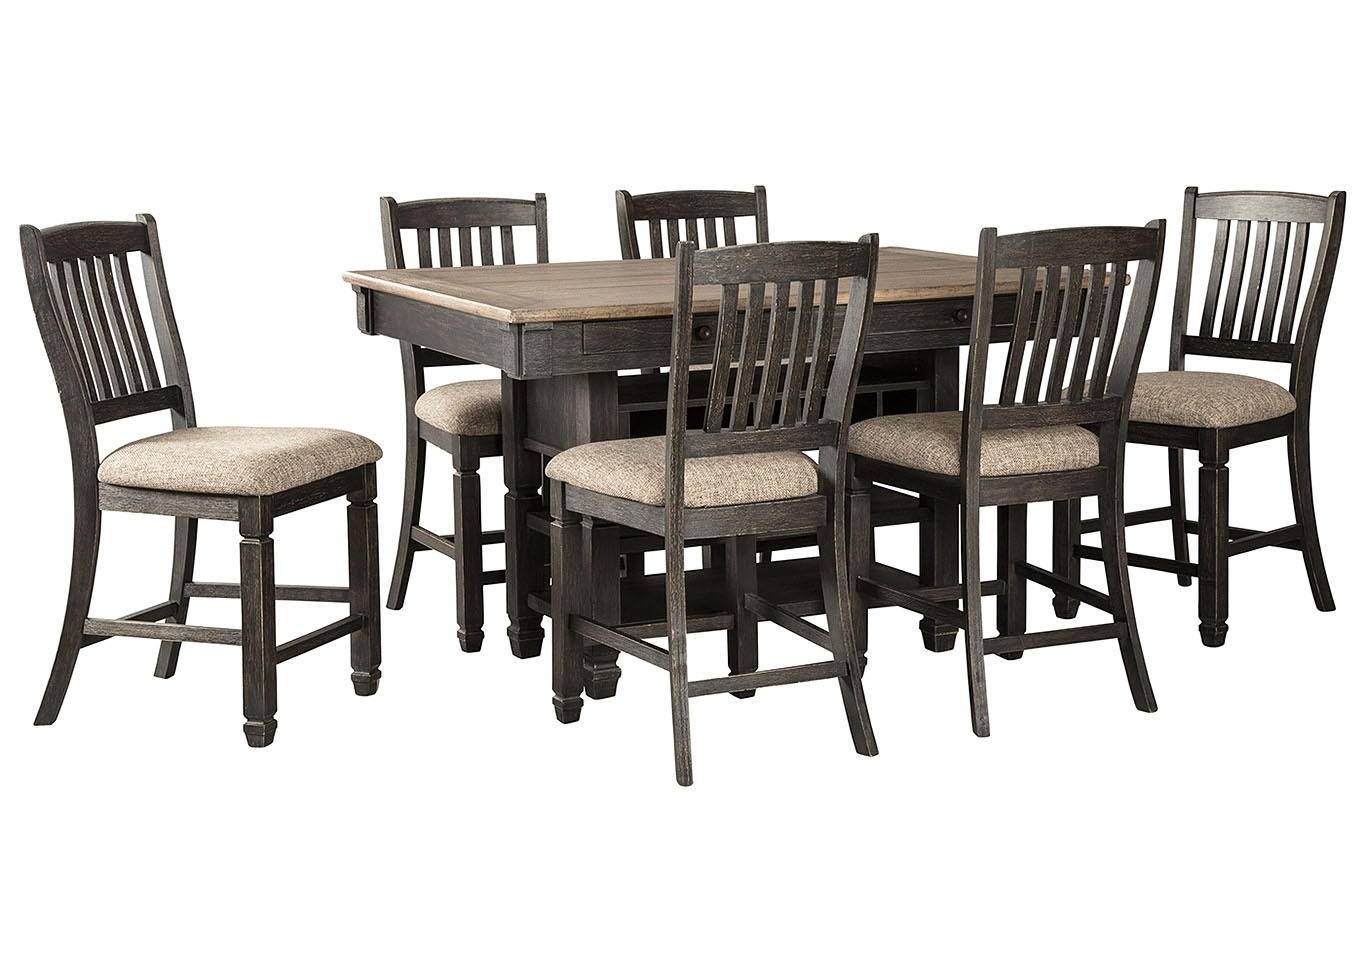 Bordelon's Home Furnishings Tyler Creek Black/grayish Brown 7 Piece In Best And Newest Craftsman 5 Piece Round Dining Sets With Side Chairs (Image 3 of 20)